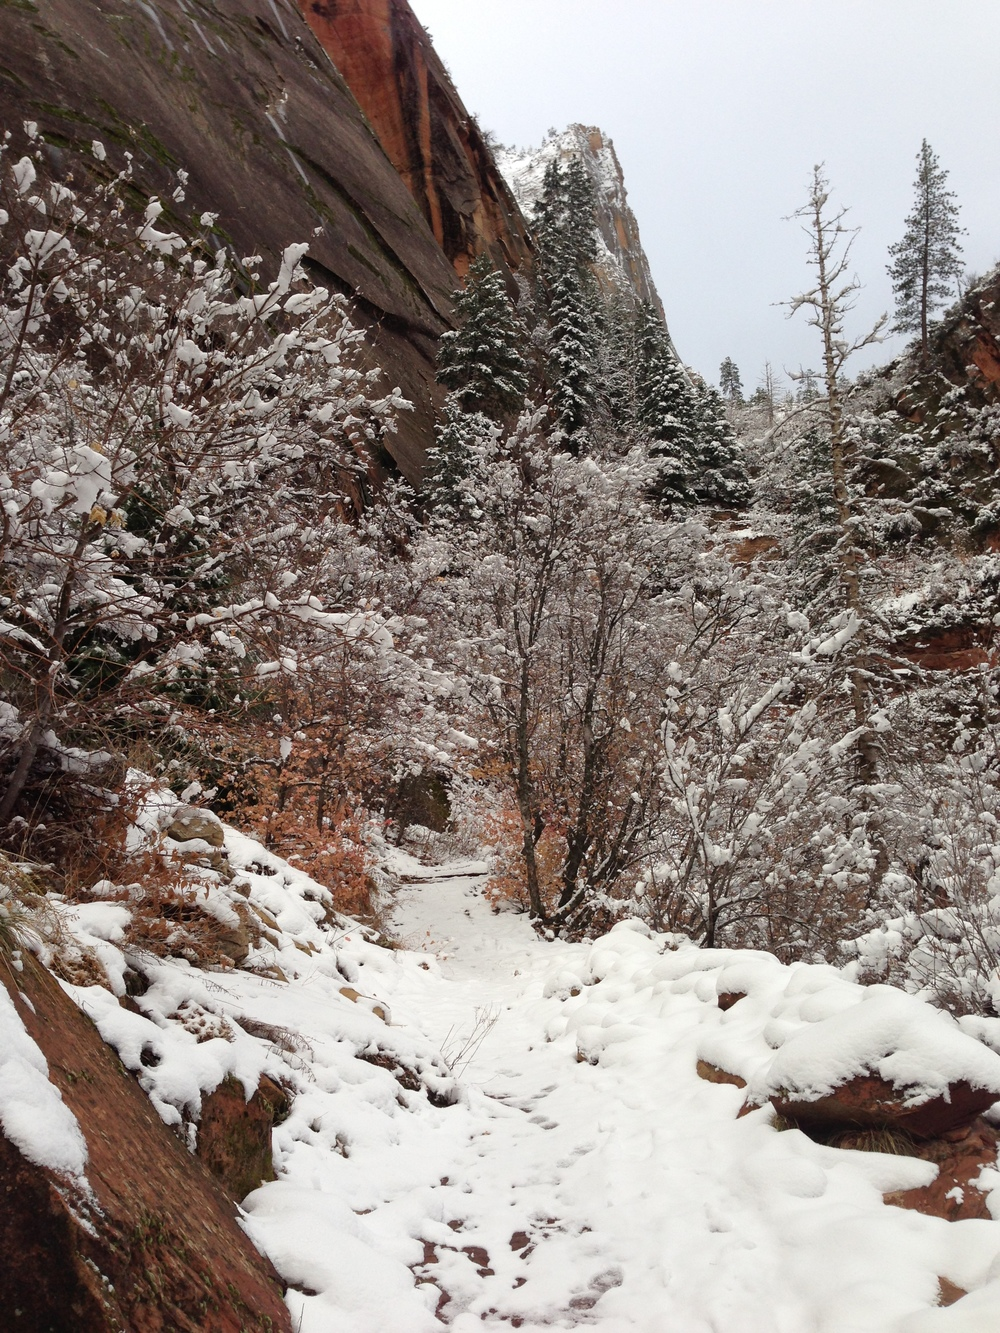 Almost at the Hidden Canyon turnoff - good snow coverage on the trail. Photo shot December 2012.